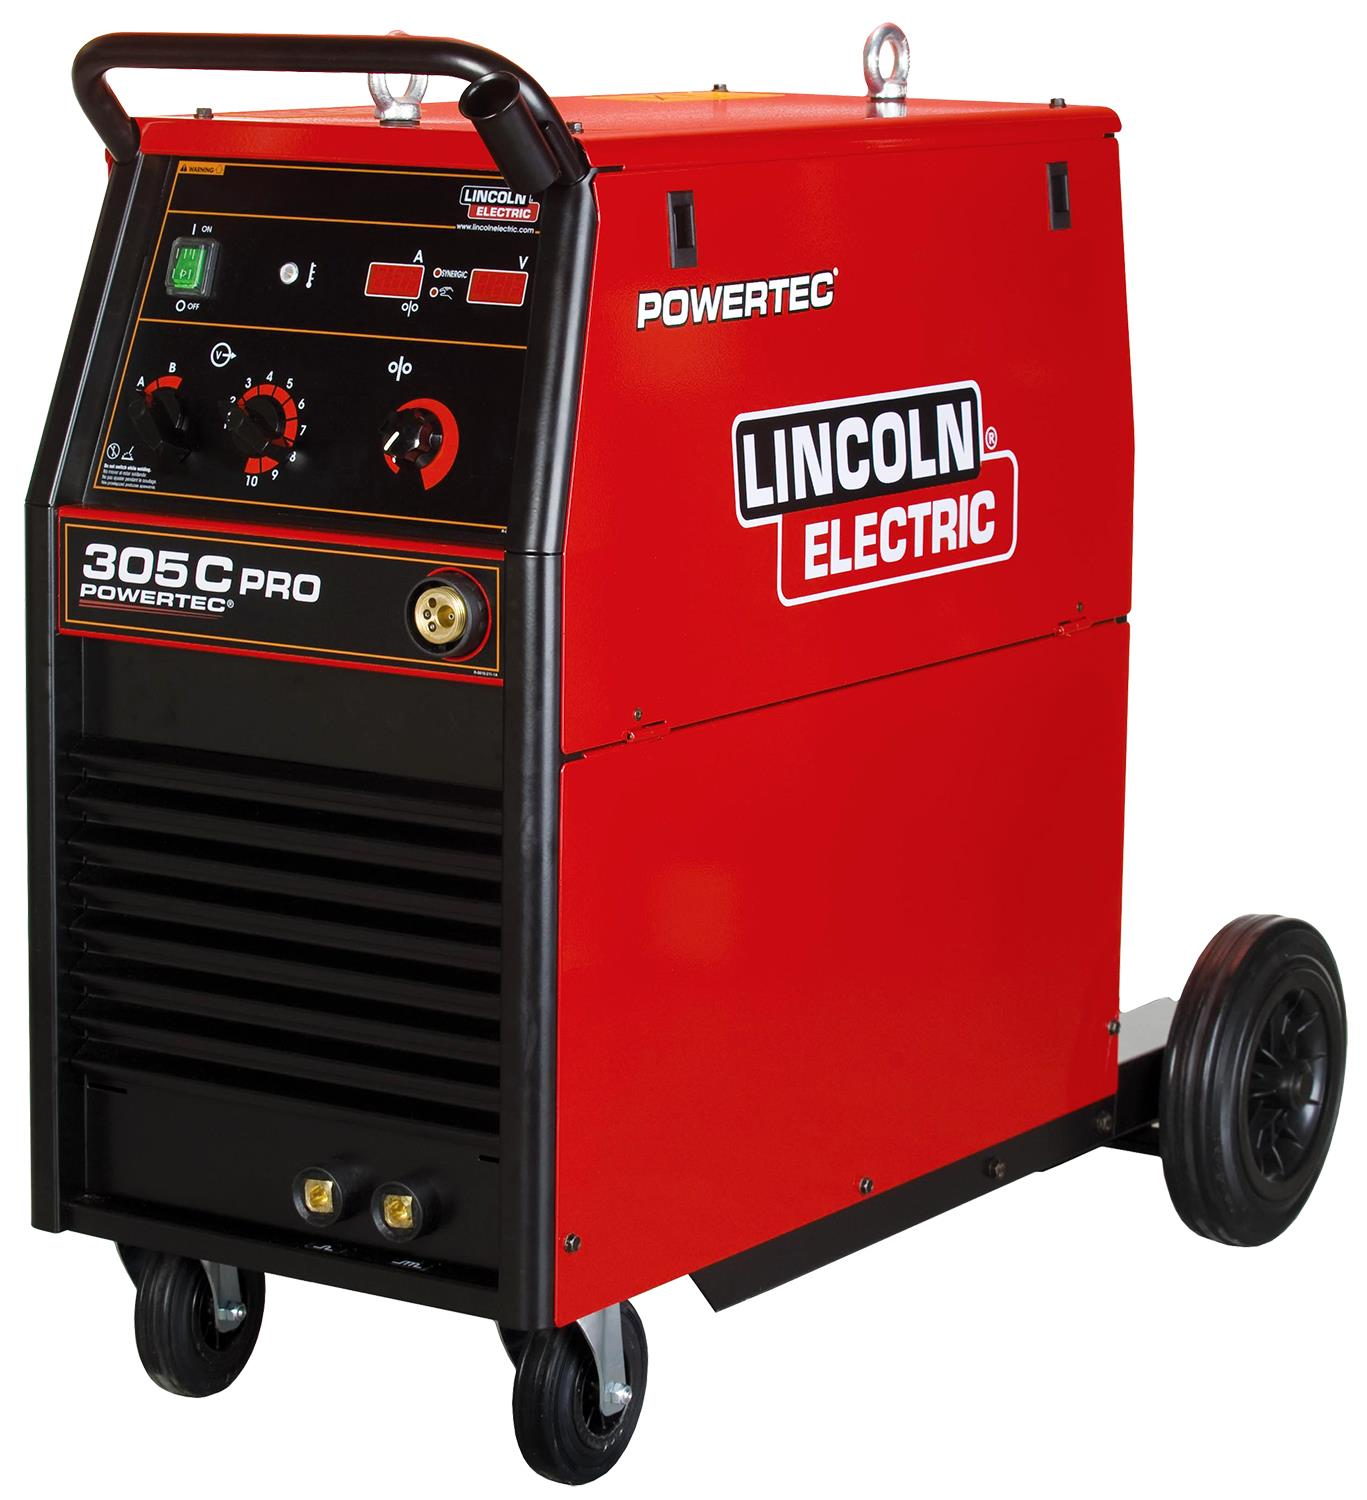 K14057-1  Lincoln Electric Powertec 305 C Pro Mig Welder 3Ph 400V